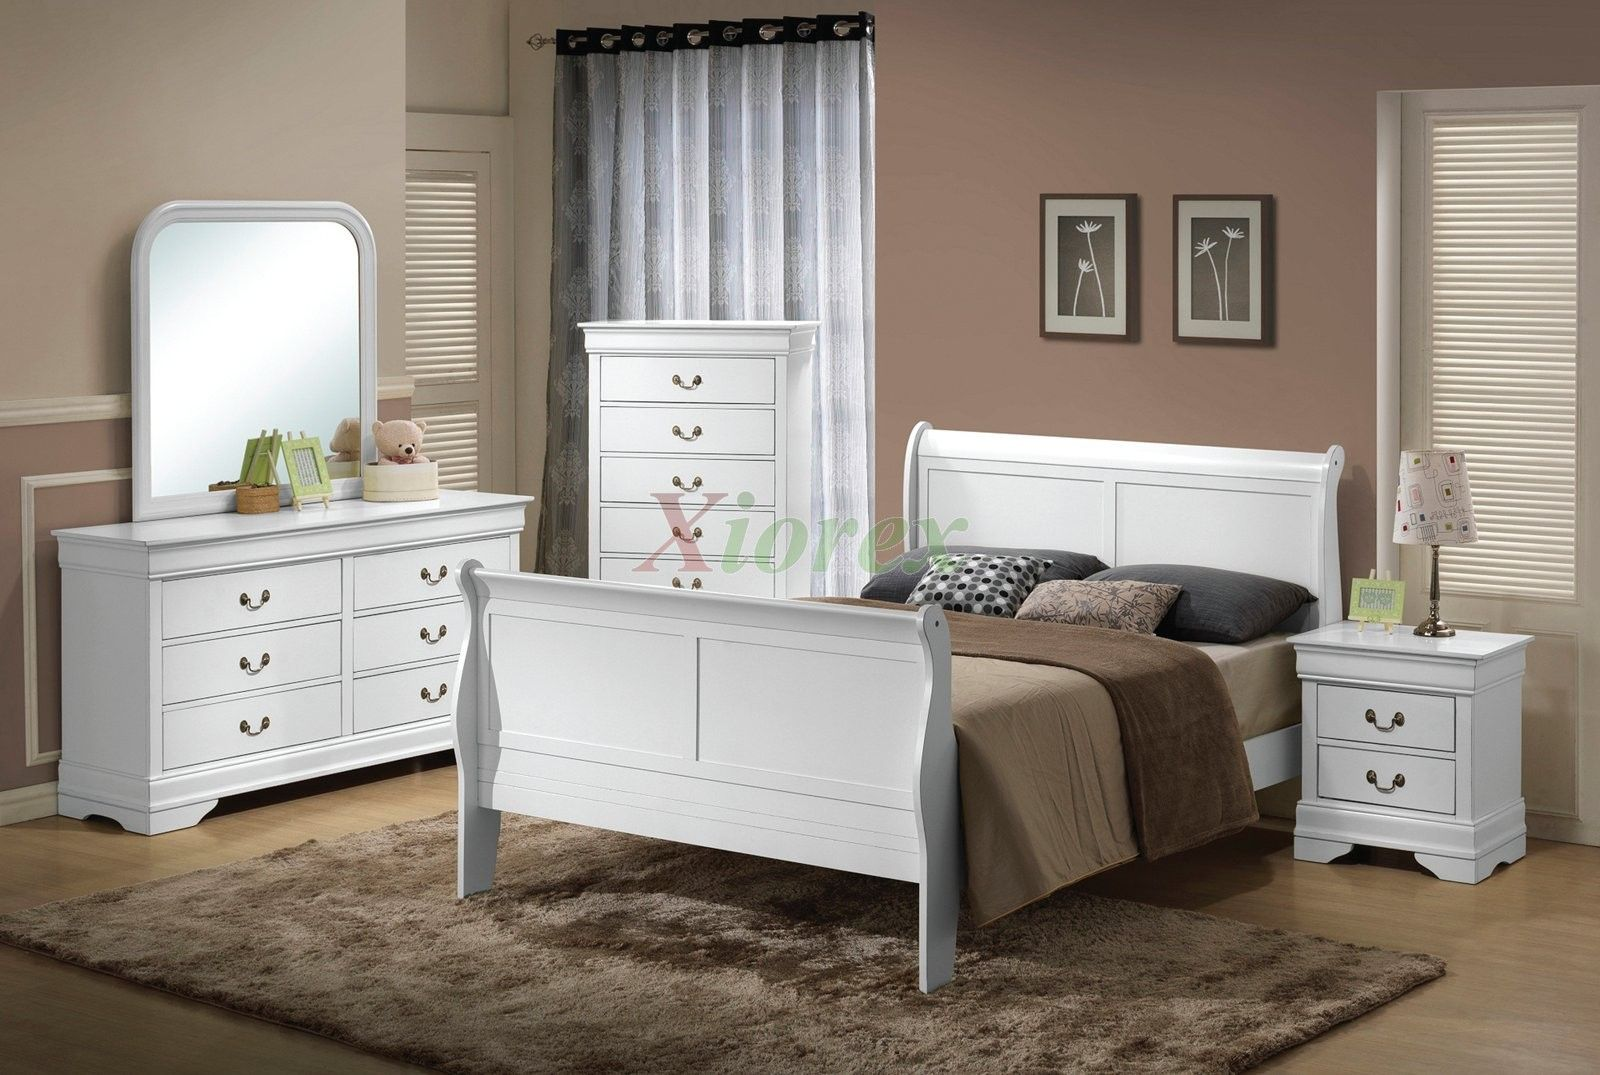 White Wood Bedroom Furniture Contemporary Accessories Pinterest And